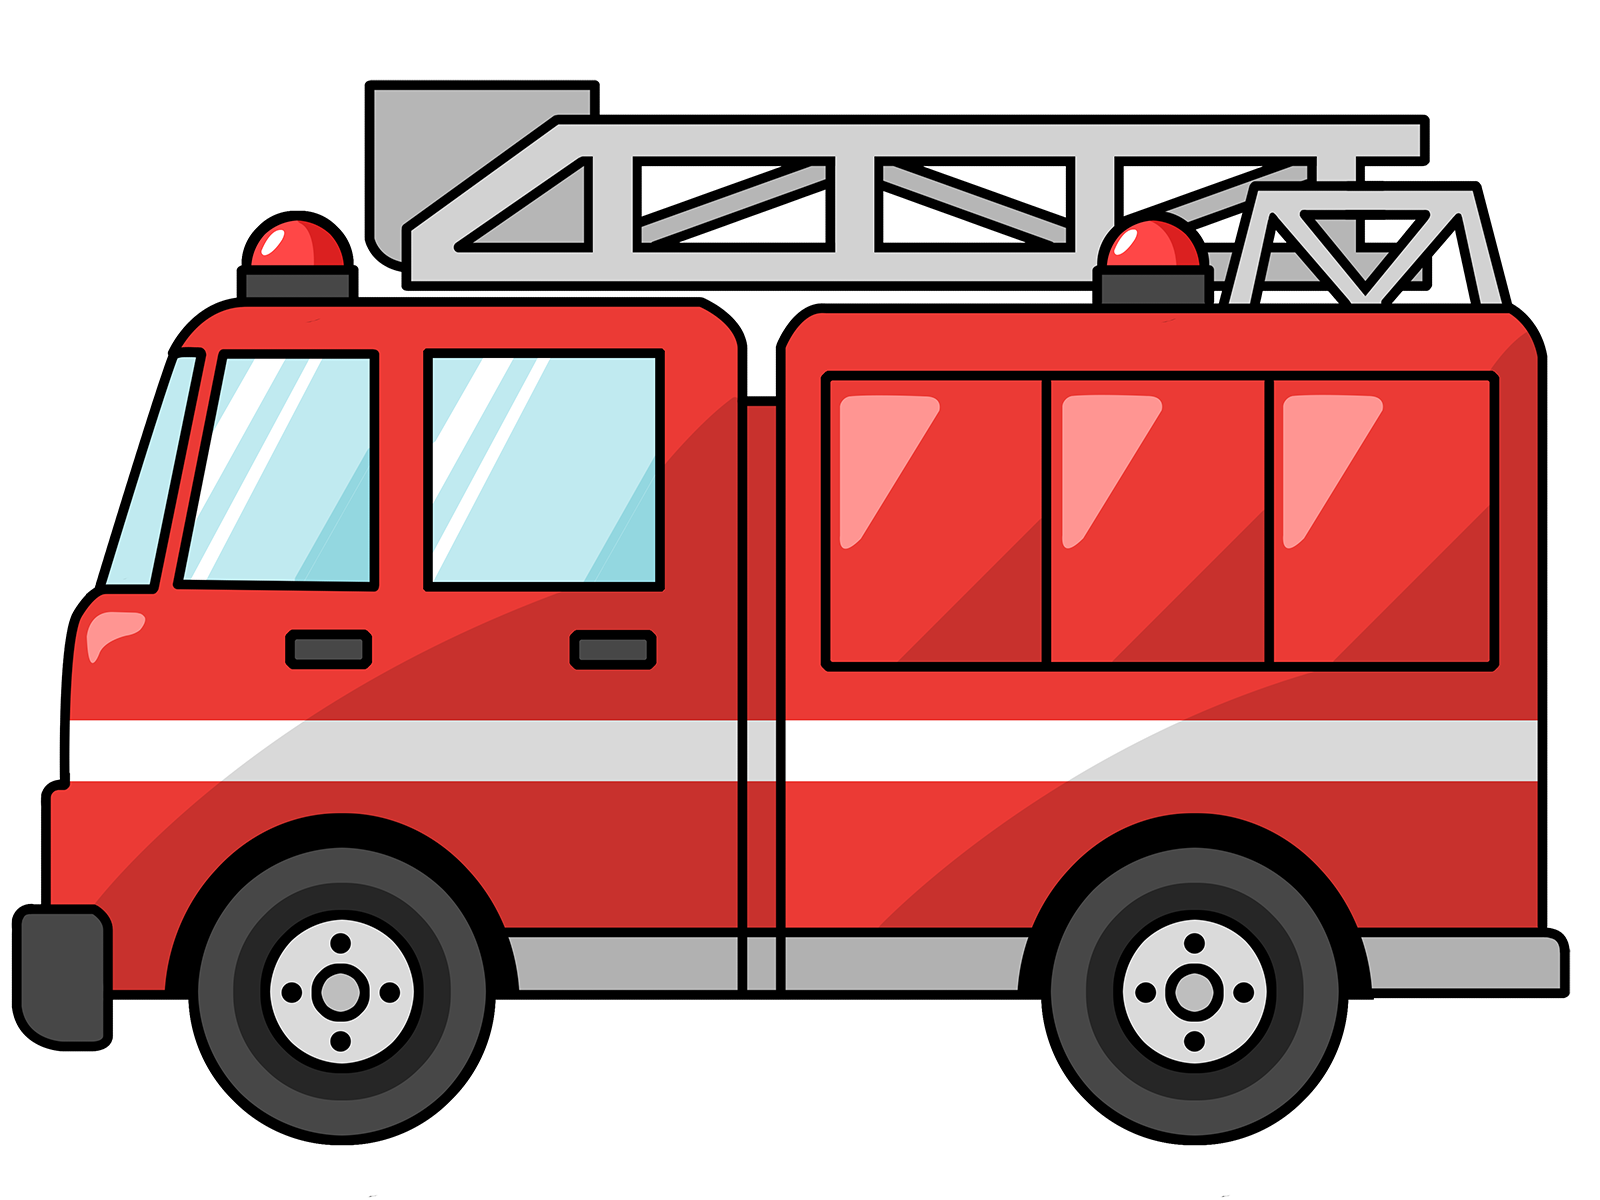 Clipart happy car svg transparent fire truck clipart - Google Search | Education | Pinterest | Fire ... svg transparent